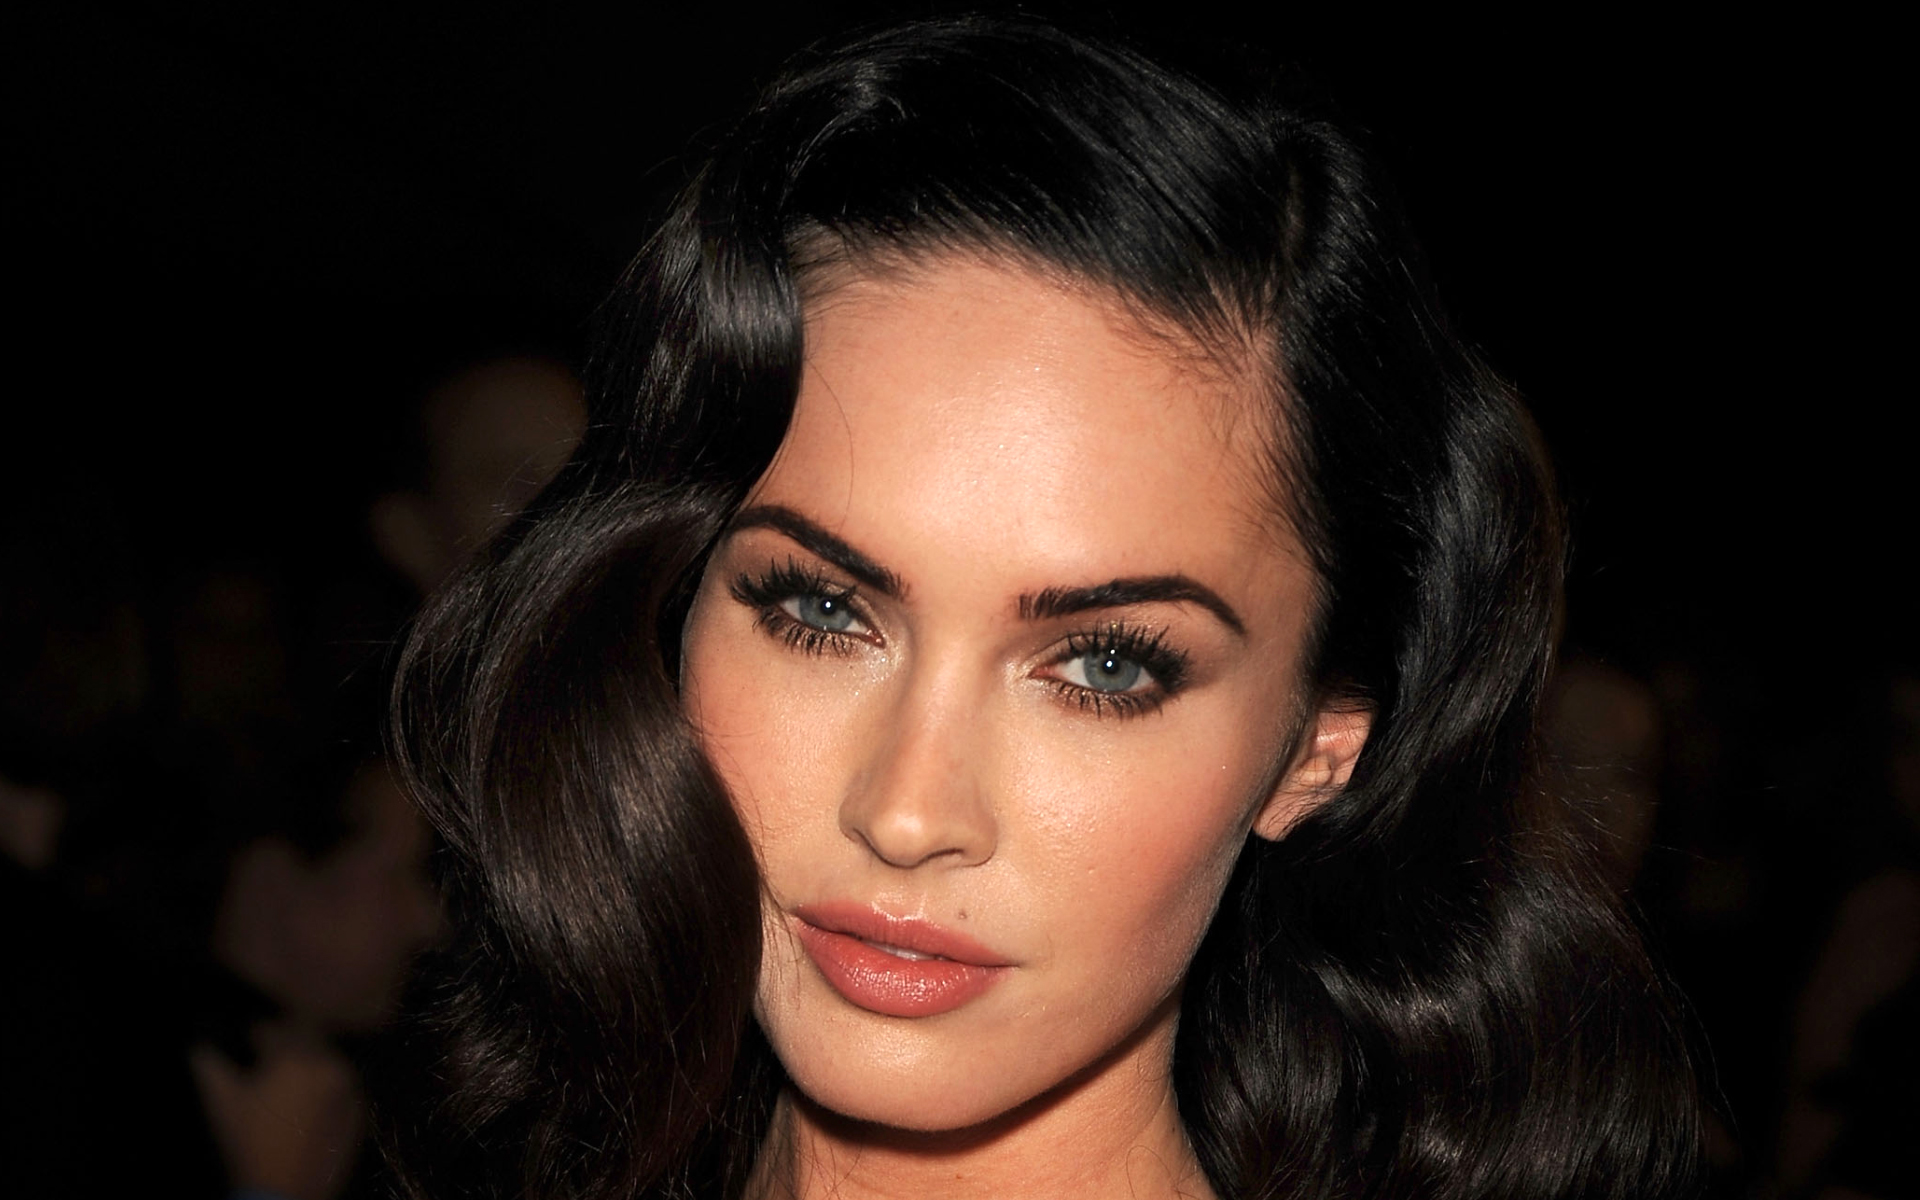 Megan Fox Celebrity Celebrities 1920x1200